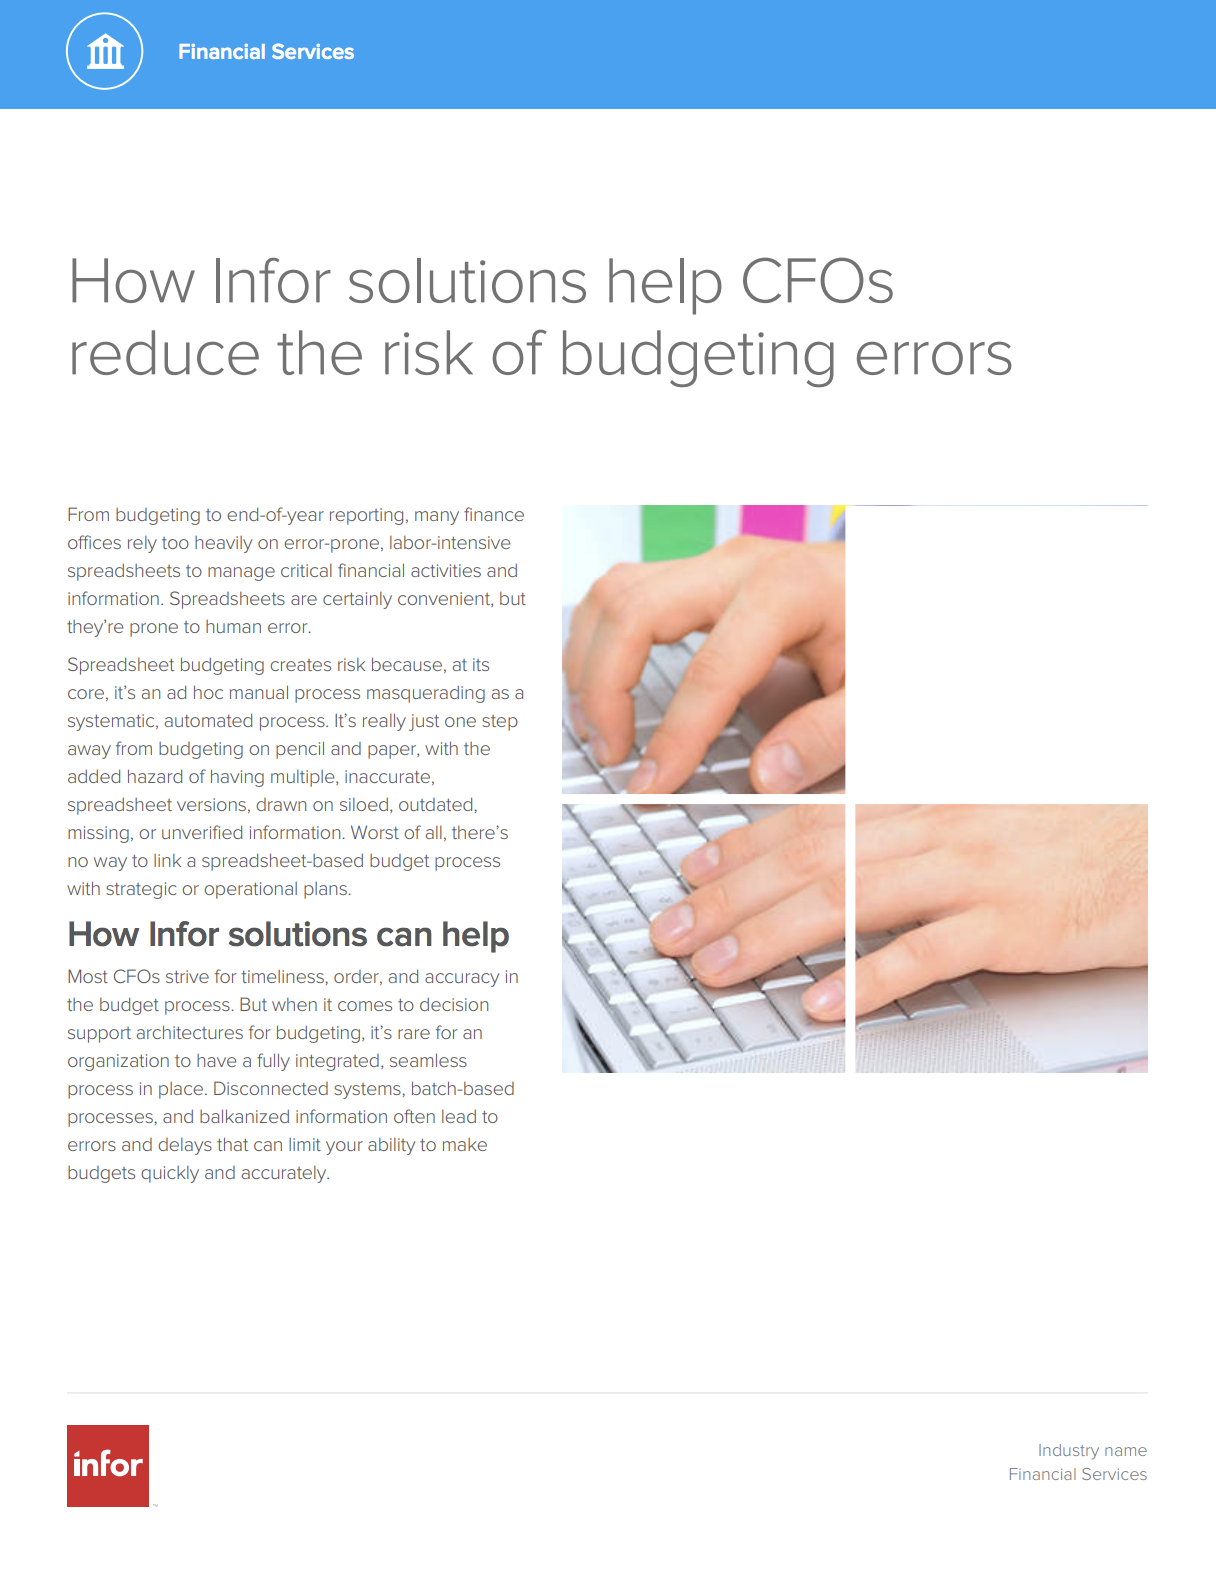 how infor solutions can help cfos reduce the risk of budgeting